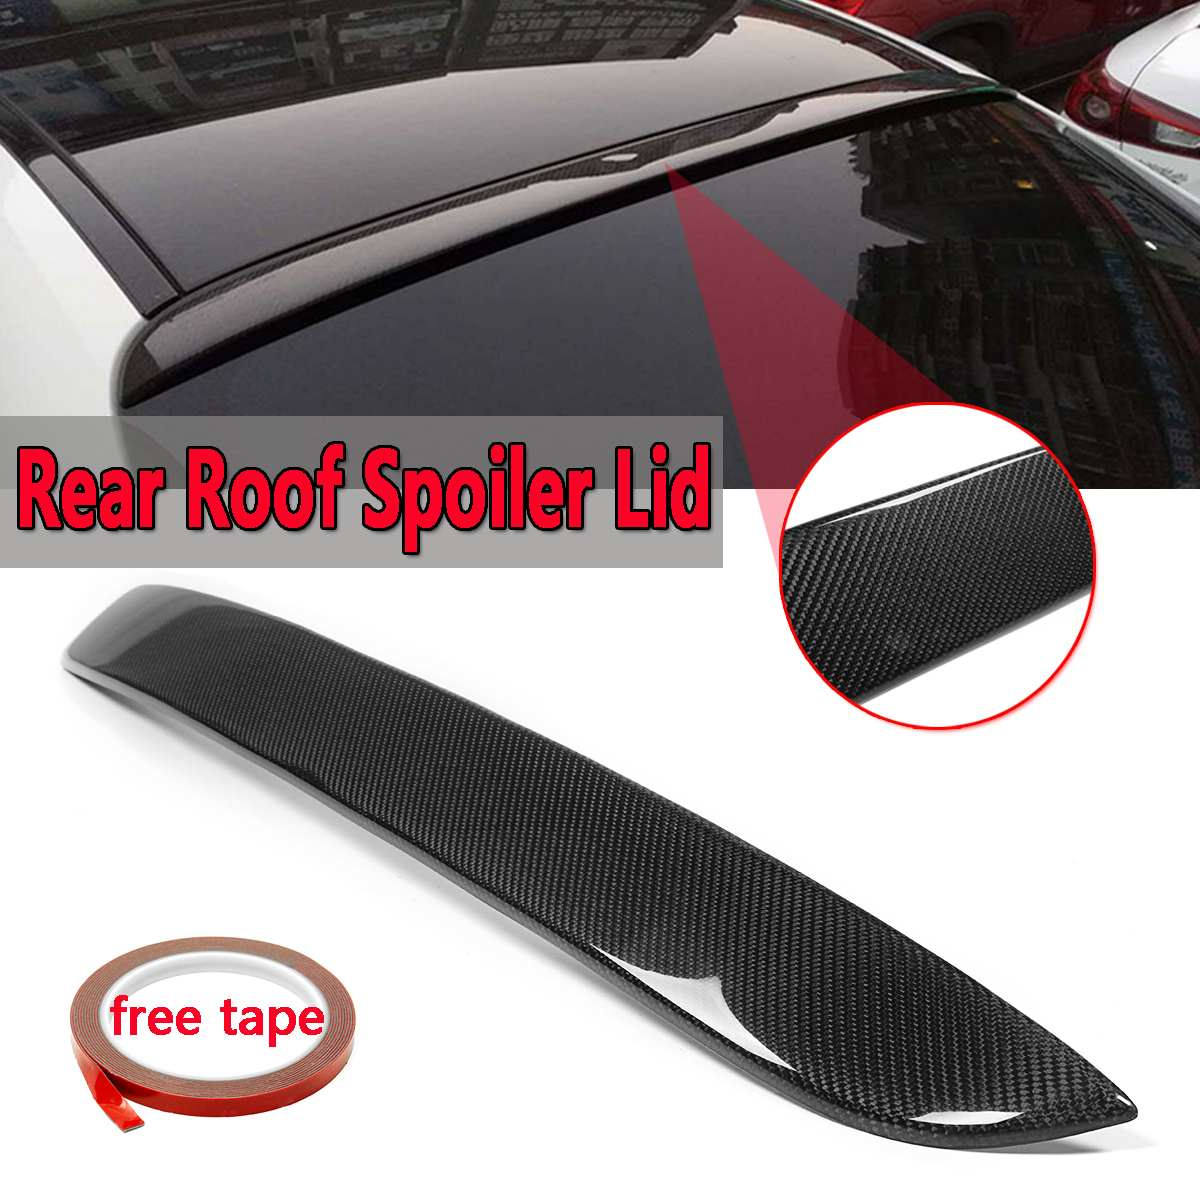 High Quality Car Real Carbon Fiber Rear Roof Spoiler Wing Lid For Mercedes For Benz W205 C300 C400 C63 2015-17 Rear Wing Spoiler